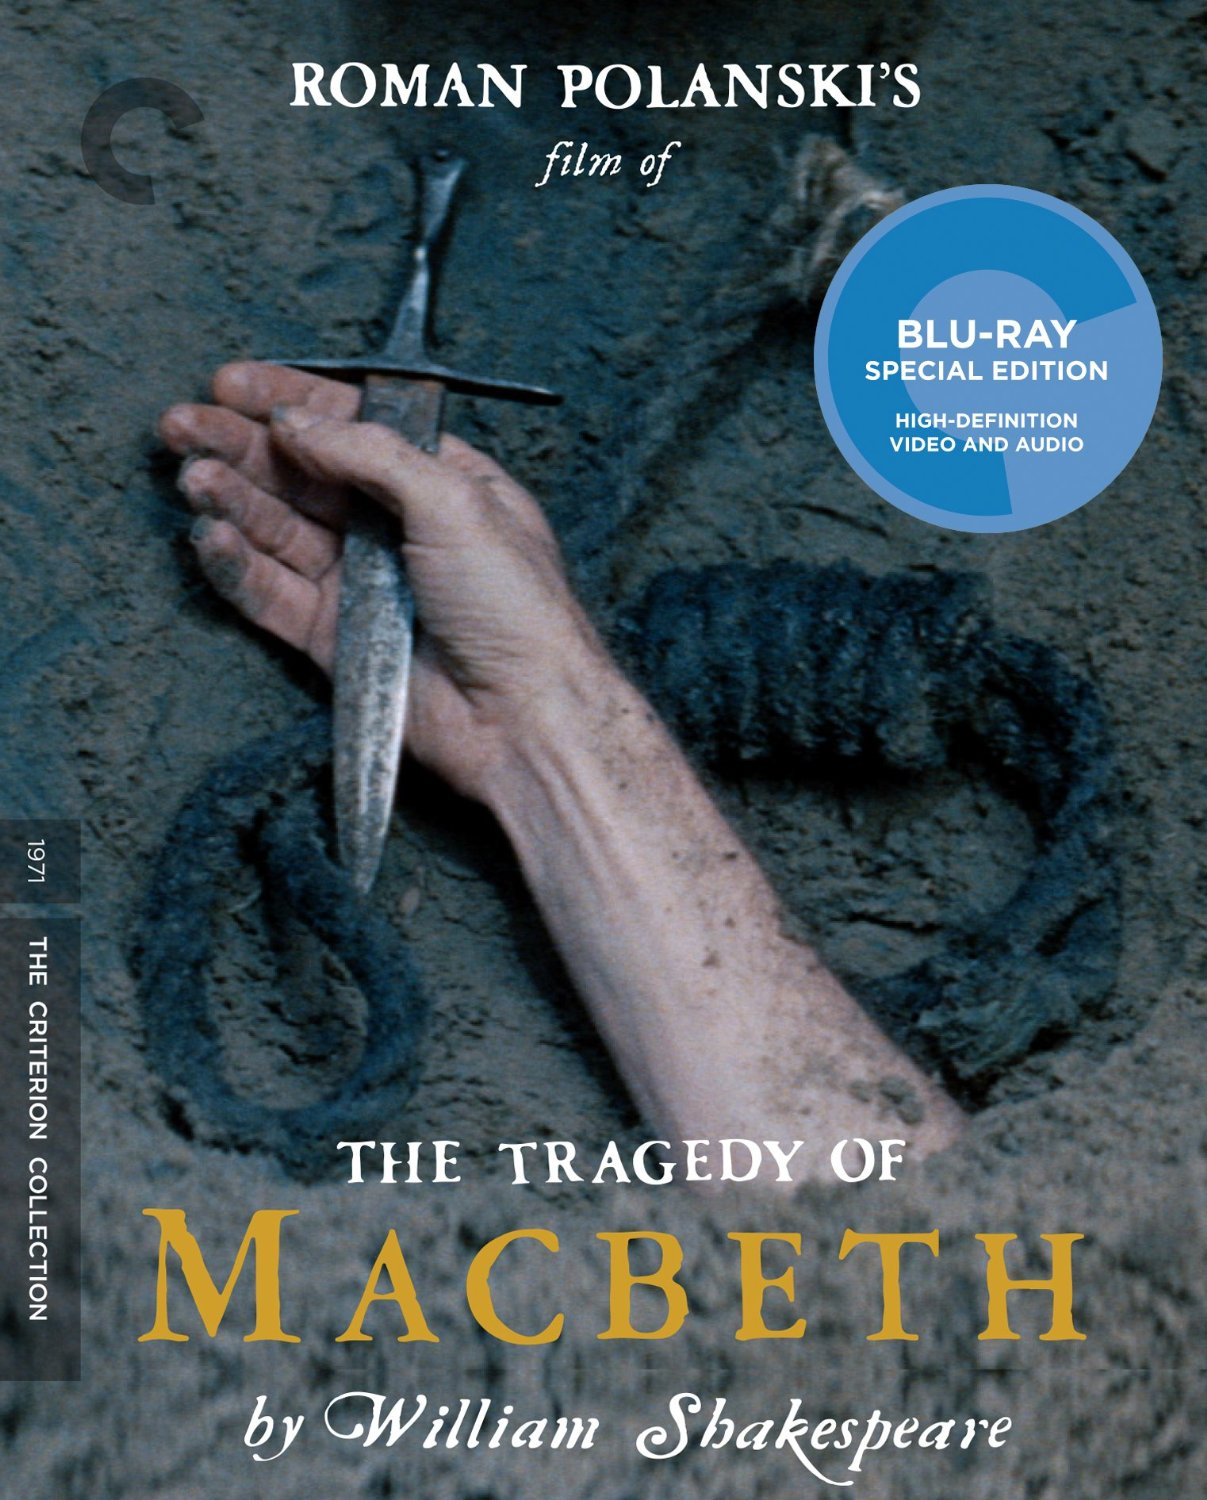 criterion blogathon r polanski s ldquo macbeth rdquo 1971 plot and criterion blogathon r polanski s ldquomacbethrdquo 1971